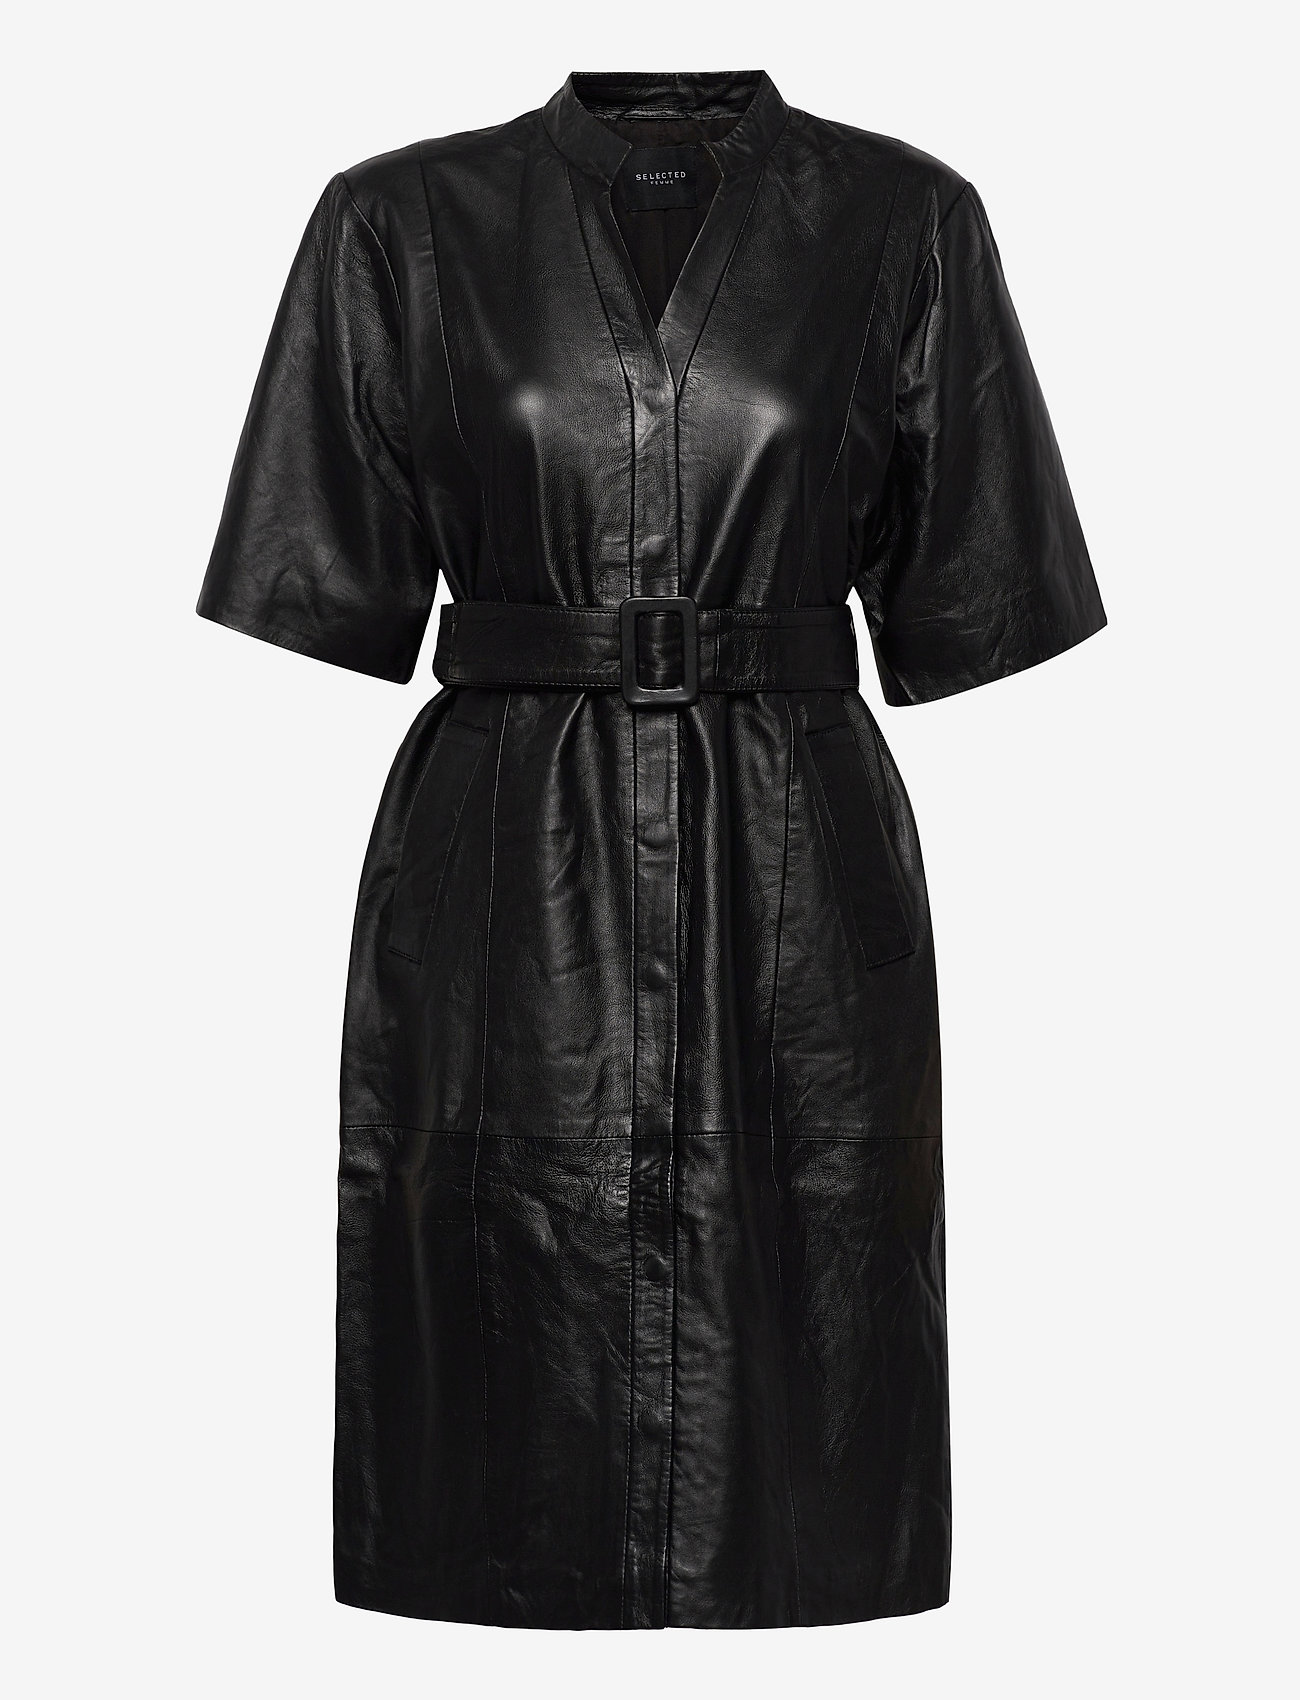 Selected Femme - SLFMARIE BELTED LEATHER DRESS B - midi dresses - black - 0